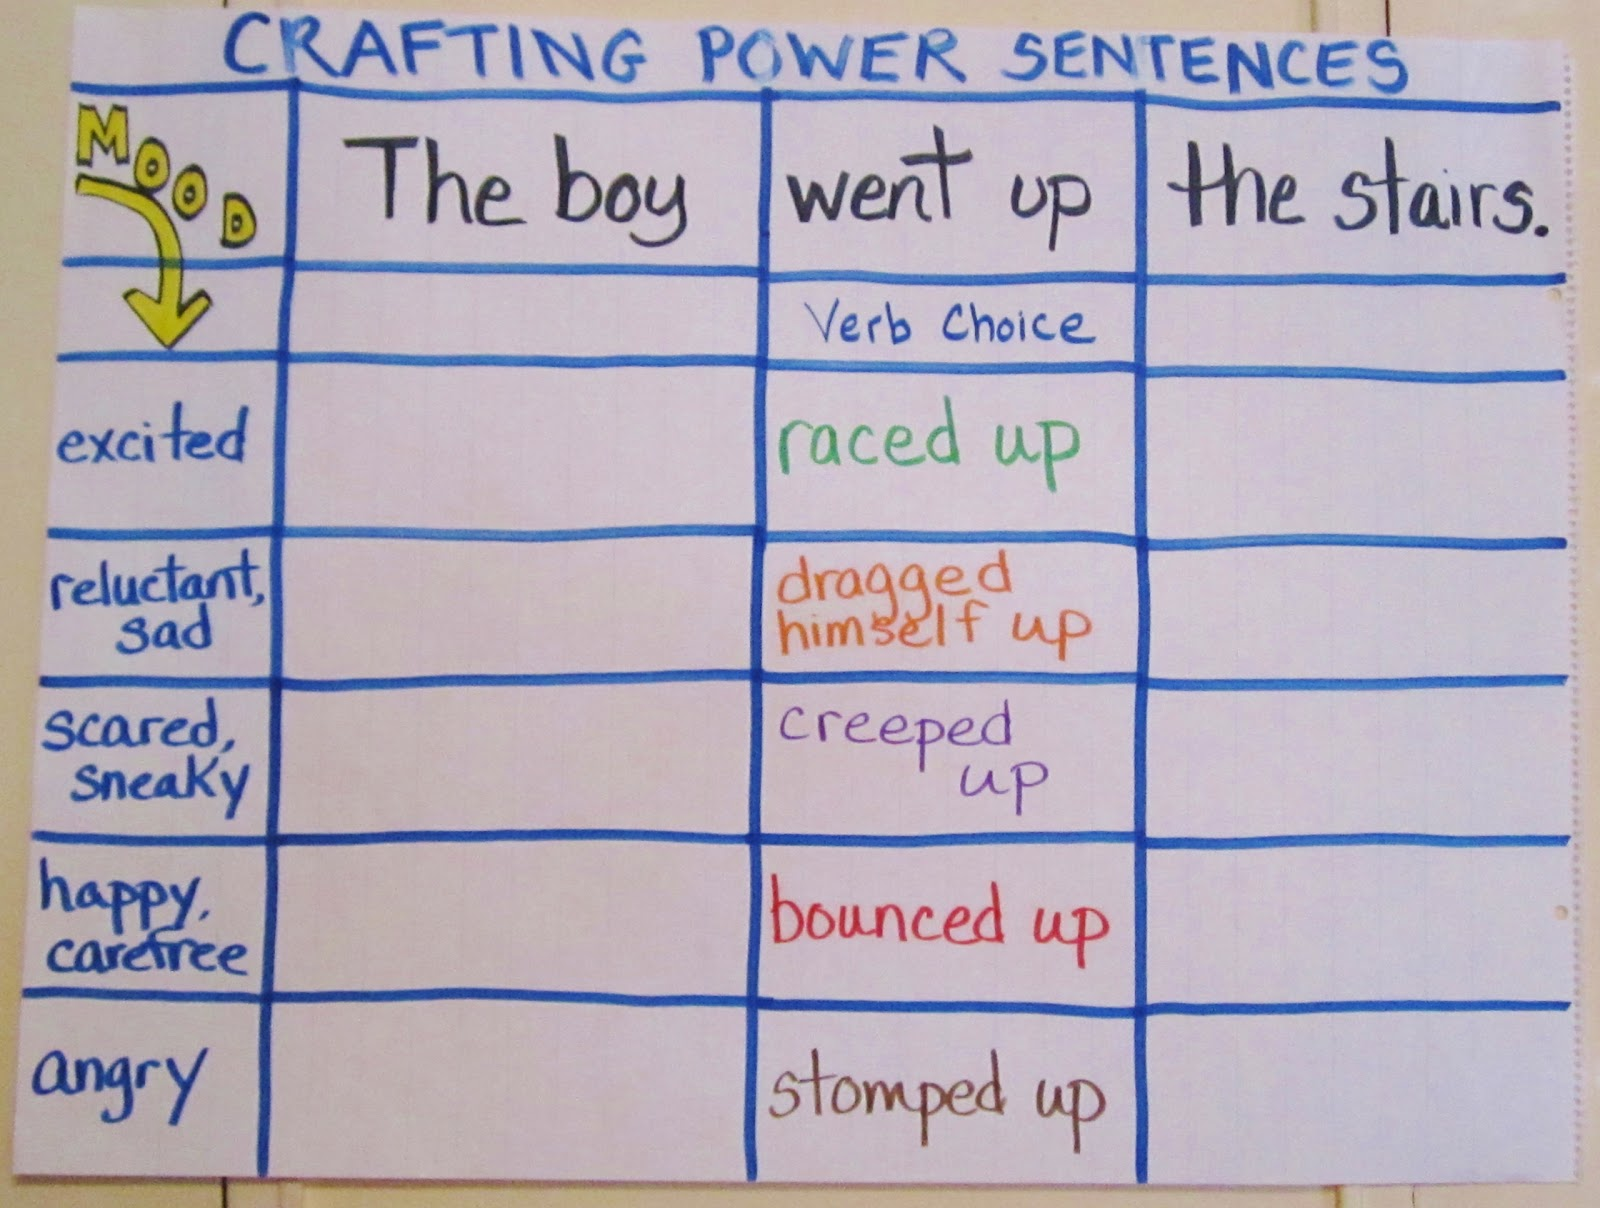 teaching my friends crafting power sentences